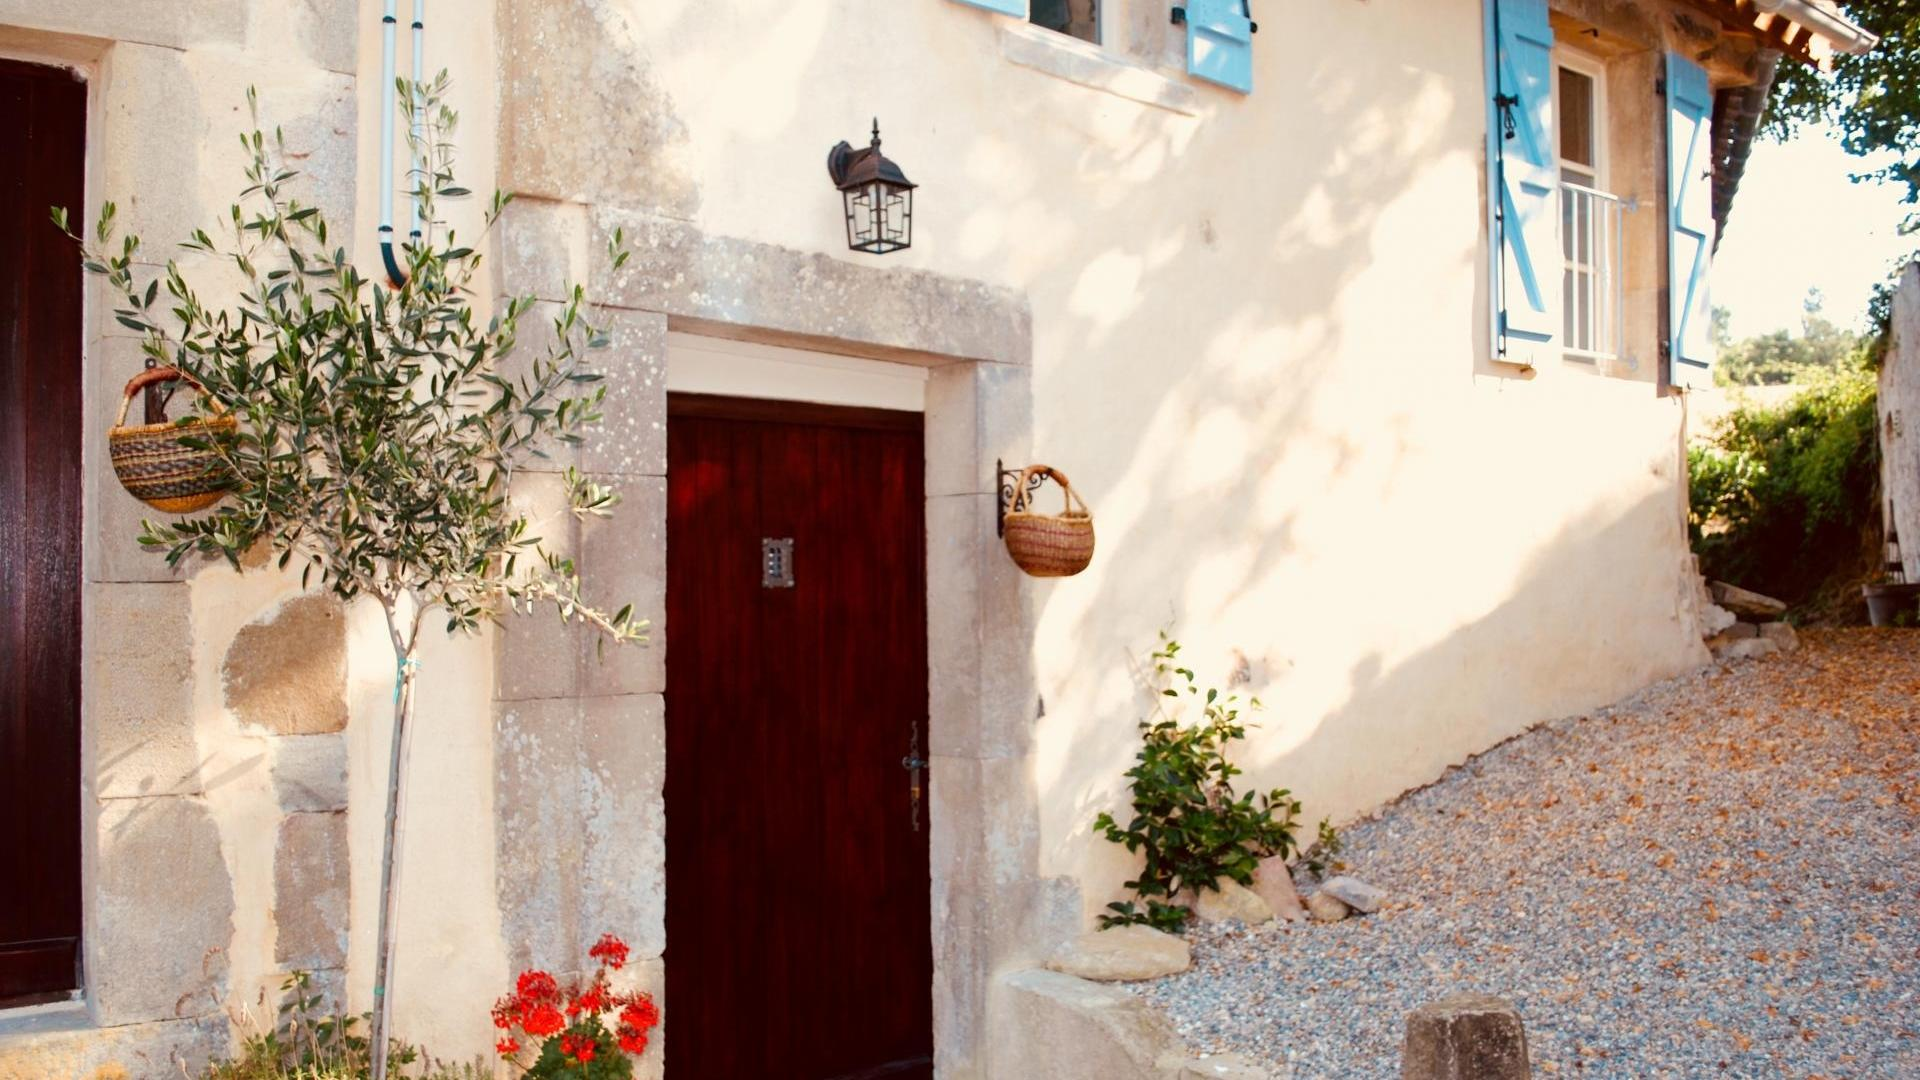 Three bedroom child-friendly holiday cottage in Southern France - NSBG